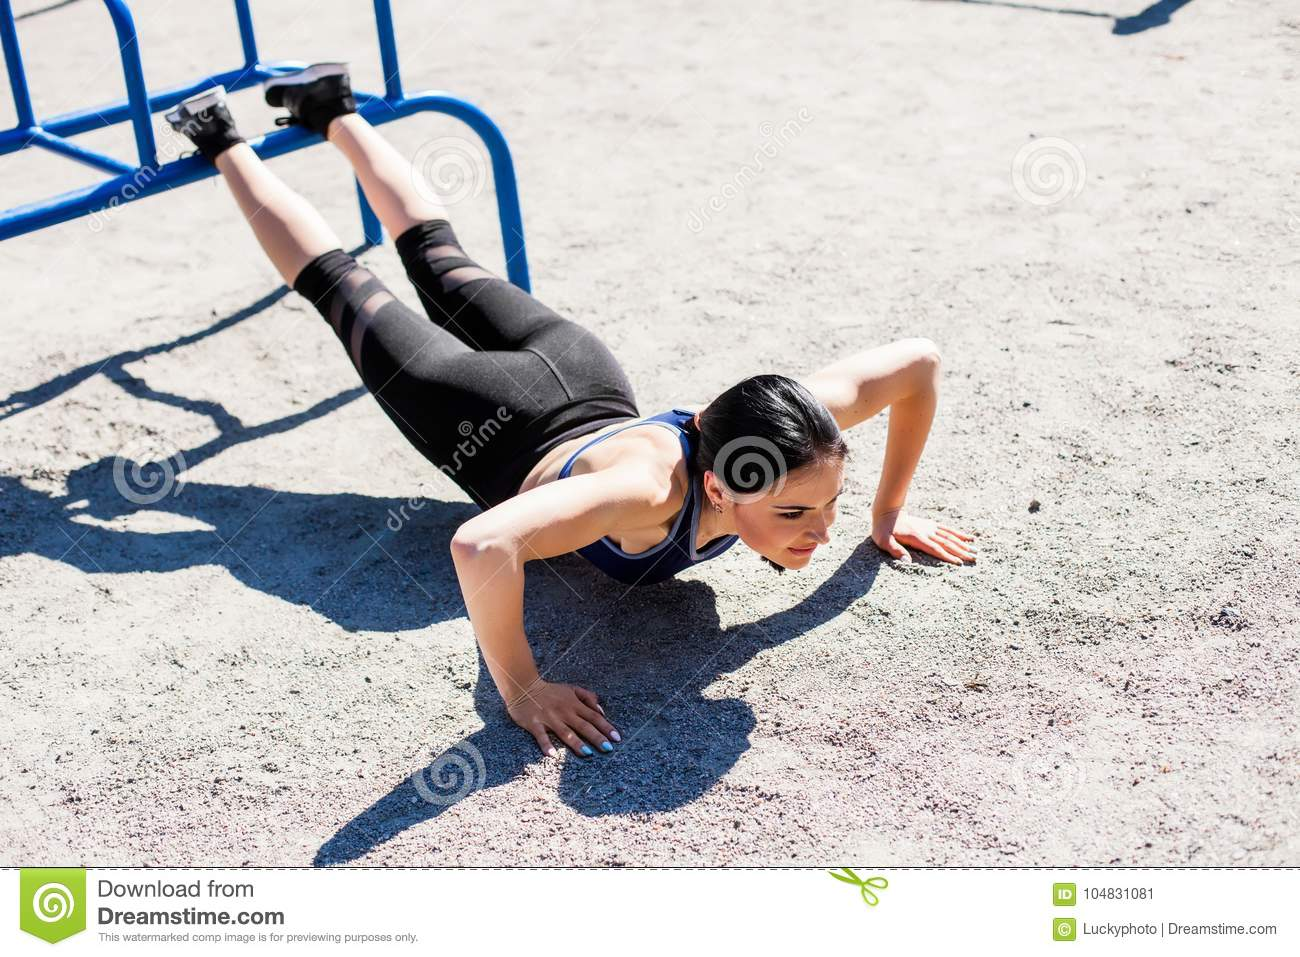 94e5bbed1a20b Sportive teen in a bright blue sport bra and black leggings doing push ups  on the sport playground. Photo of an athlete girl with a beautiful sports  body